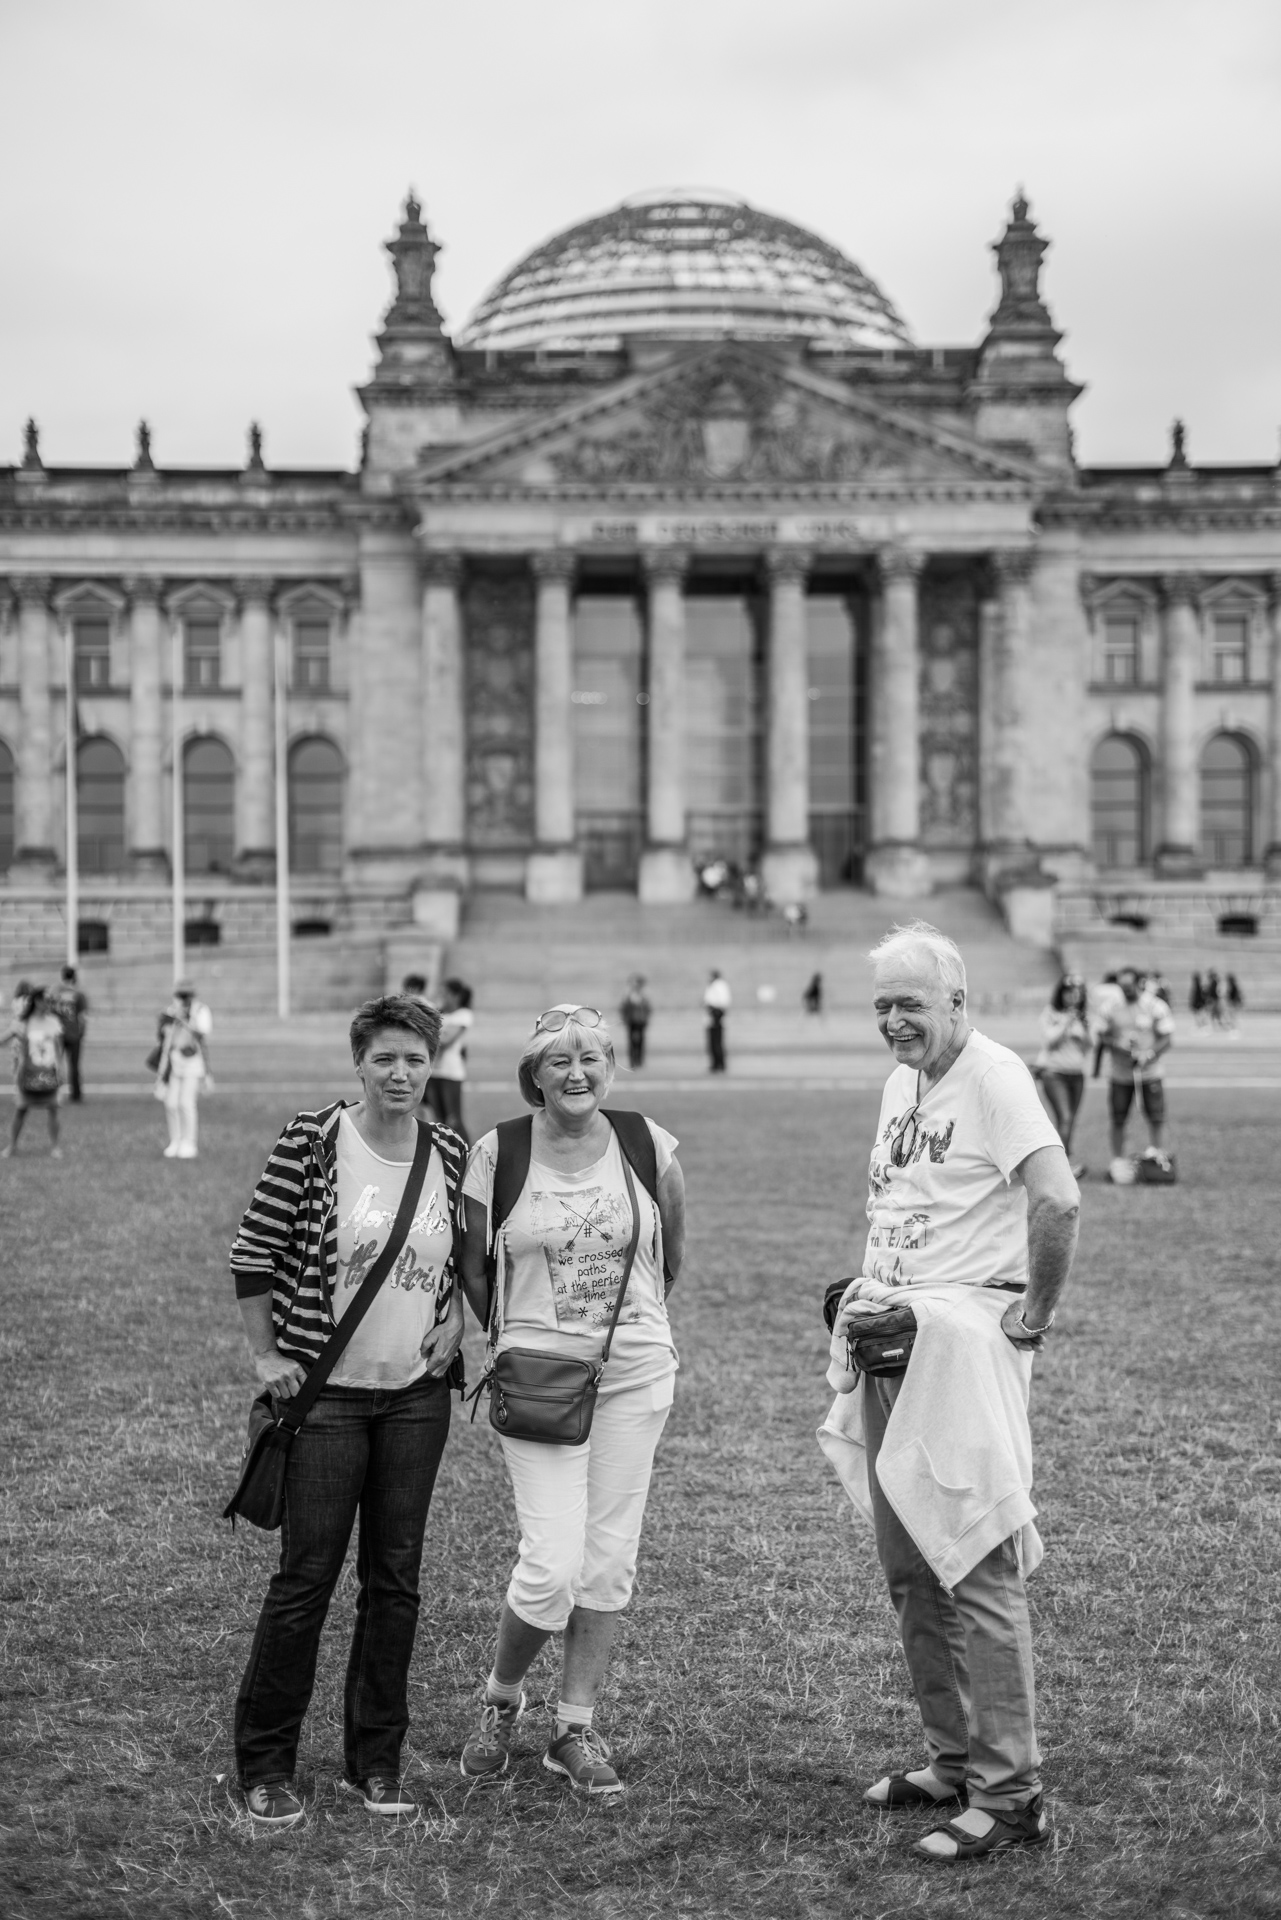 My sister and parents at the Reichstag